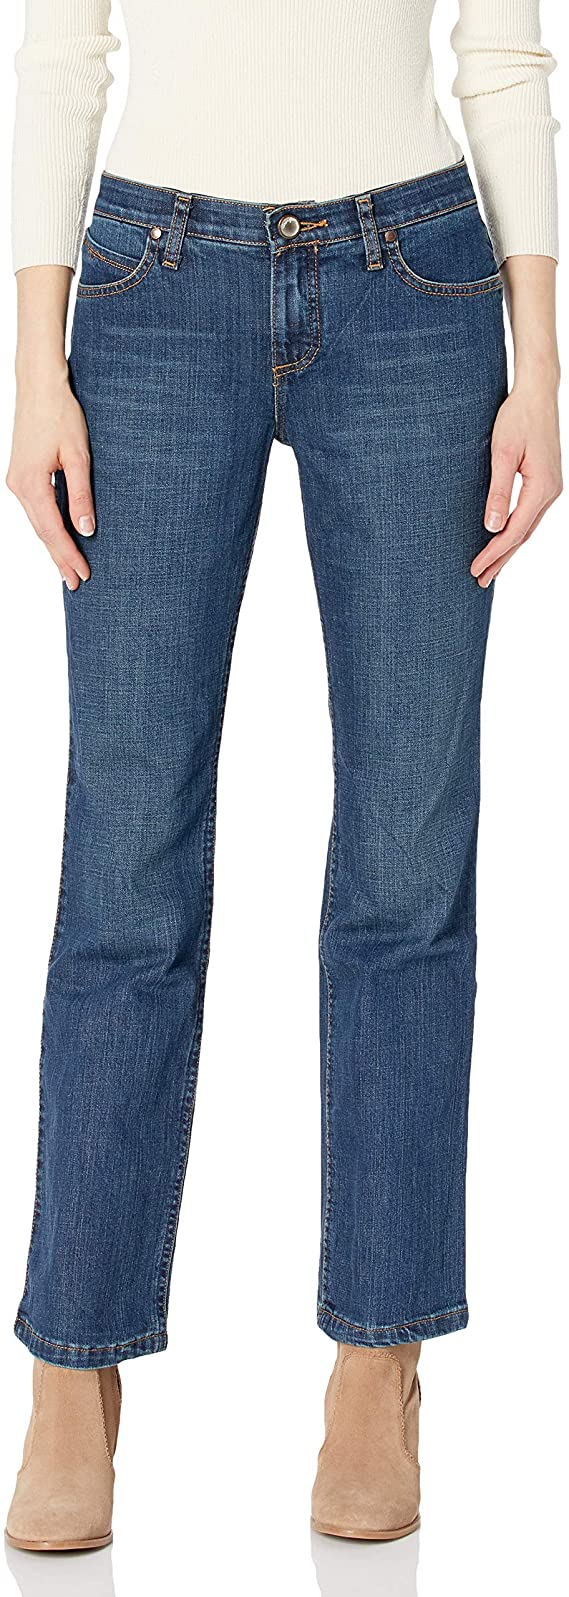 Mid Rise Boot Cut Ultimate Riding Jean